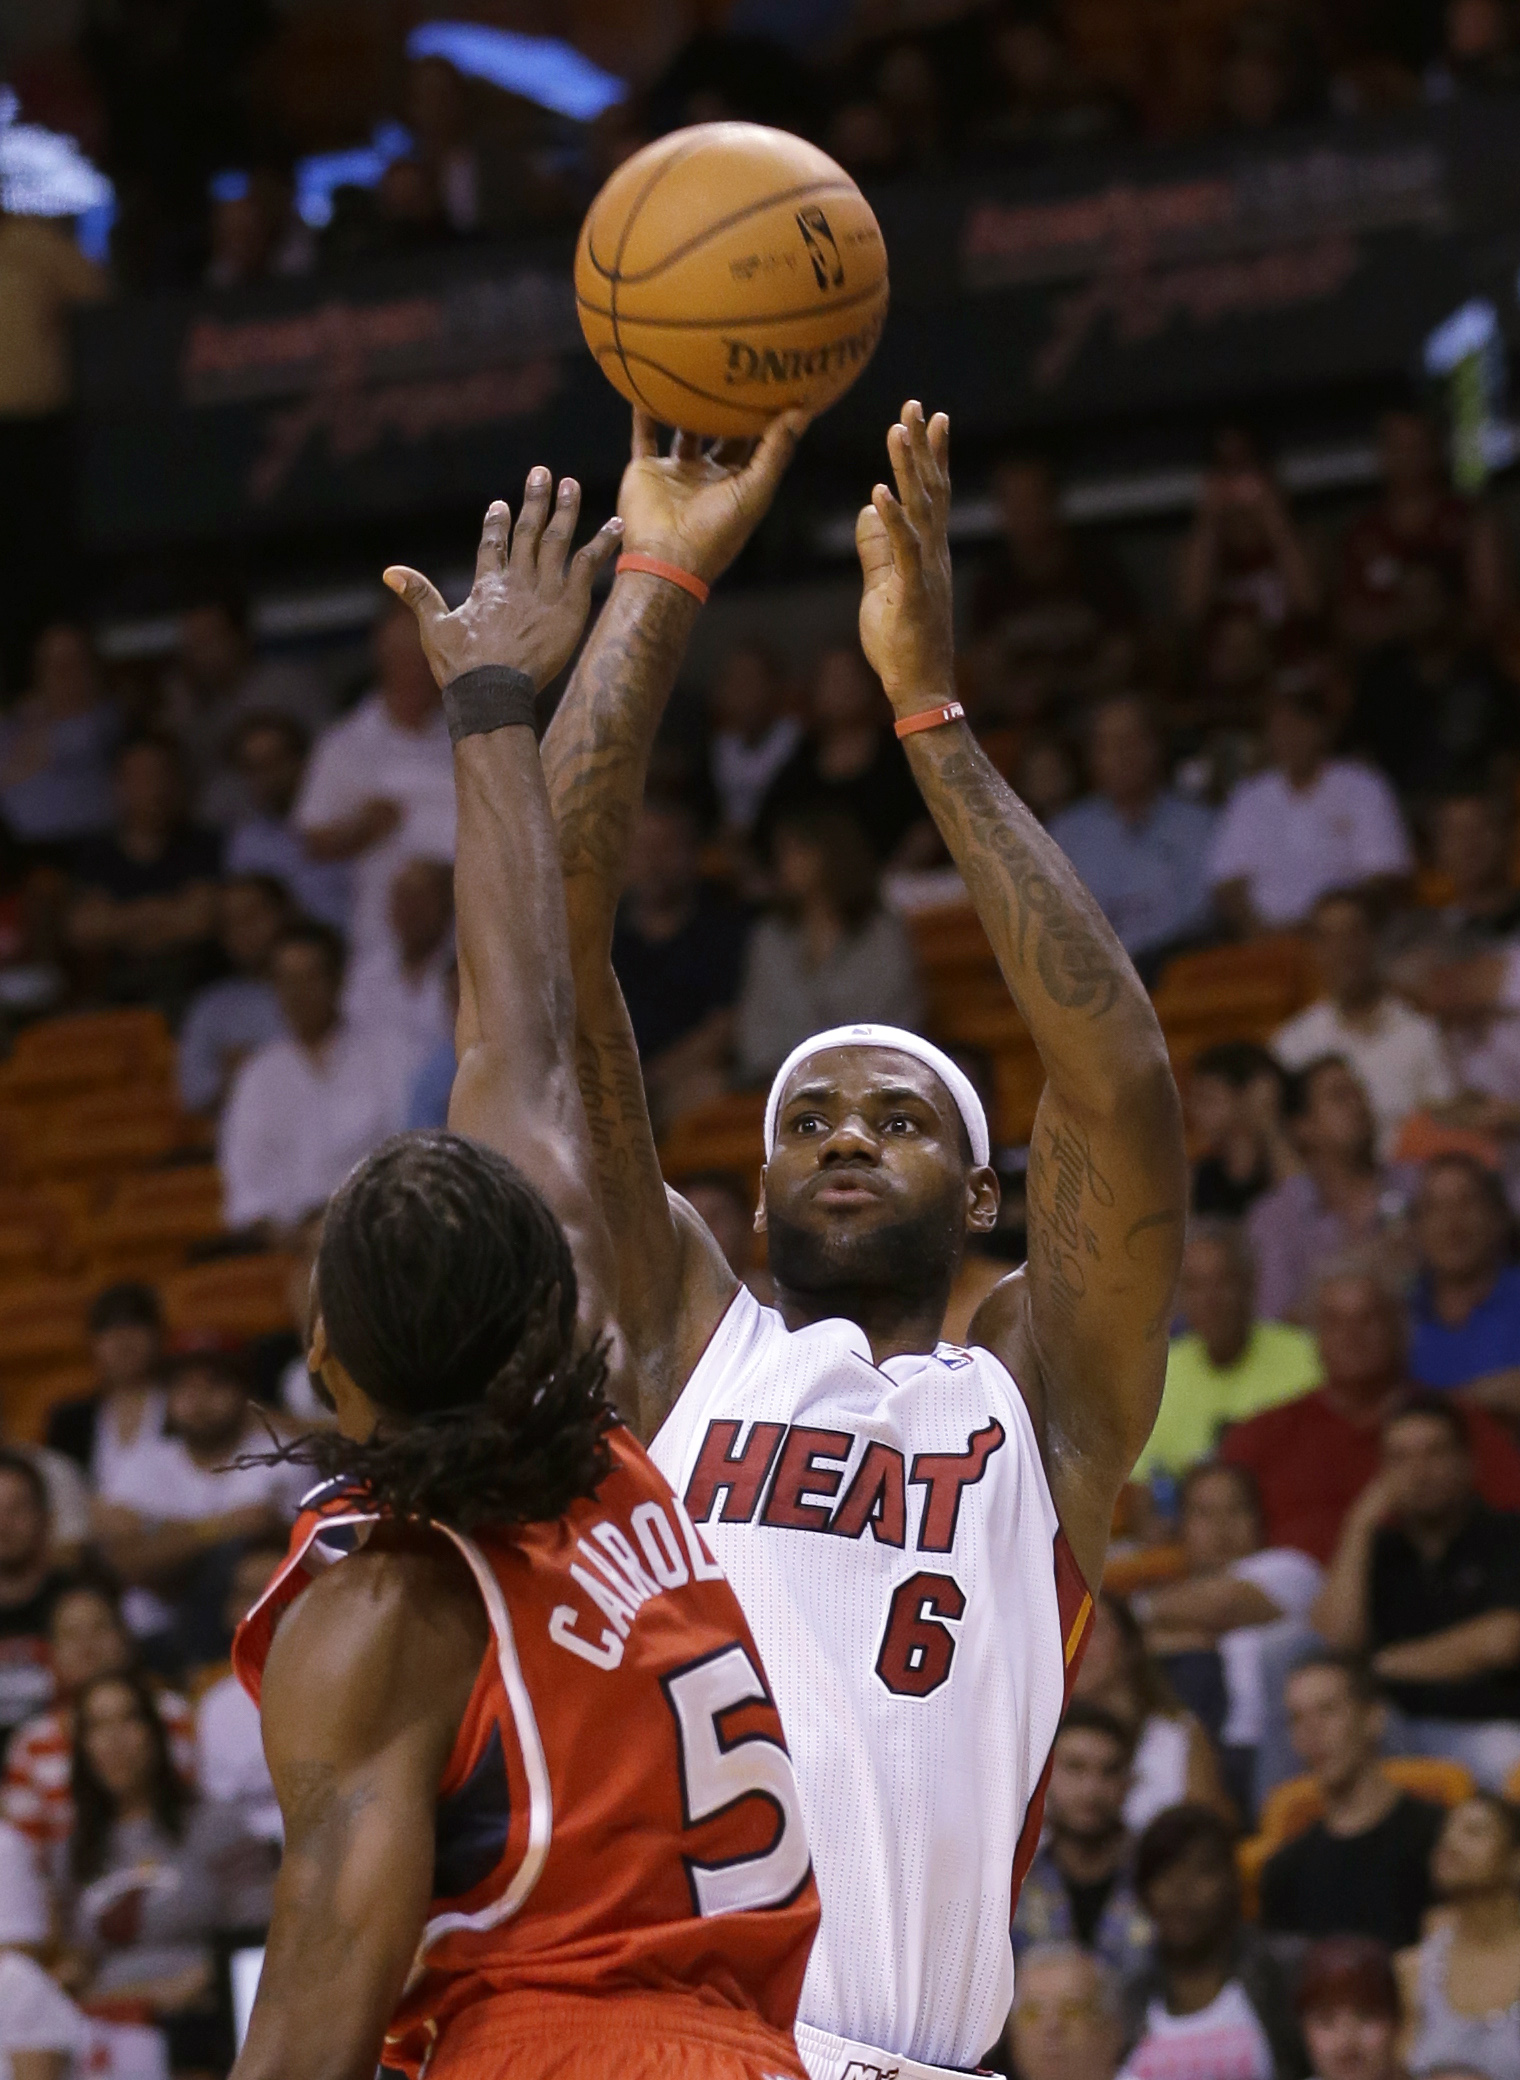 Miami Heat forward LeBron James (6) goes up for a shot against Atlanta Hawks forward DeMarre Carroll (5) during the first half of an NBA basketball game, Tuesday, Nov. 19, 2013 in Miami